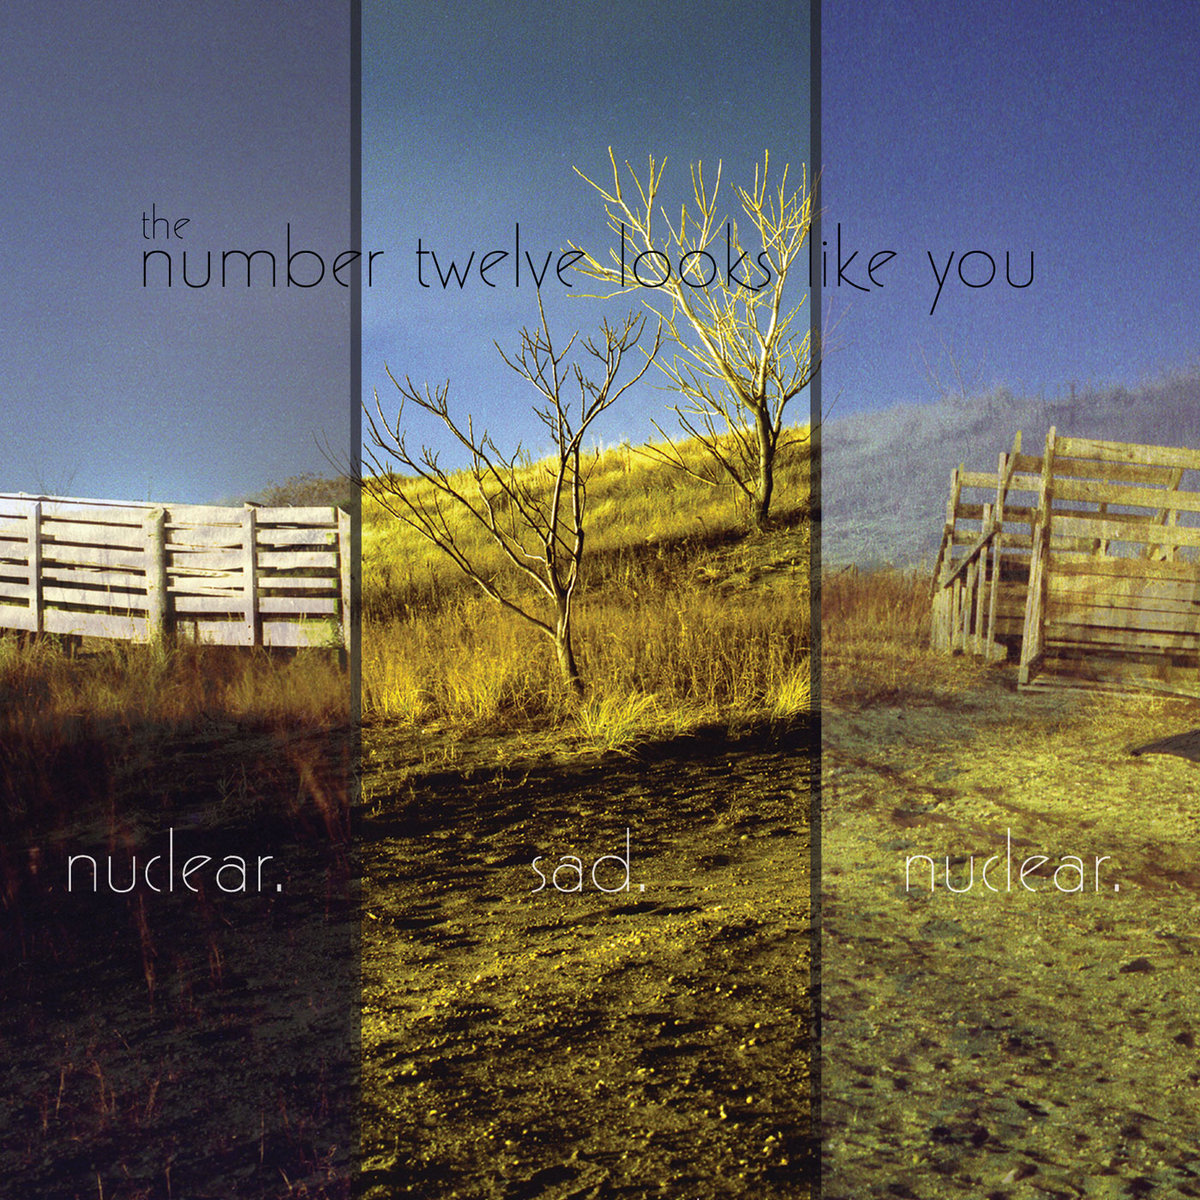 Nuclear  Sad  Nuclear  - The Number 12 Looks Like You